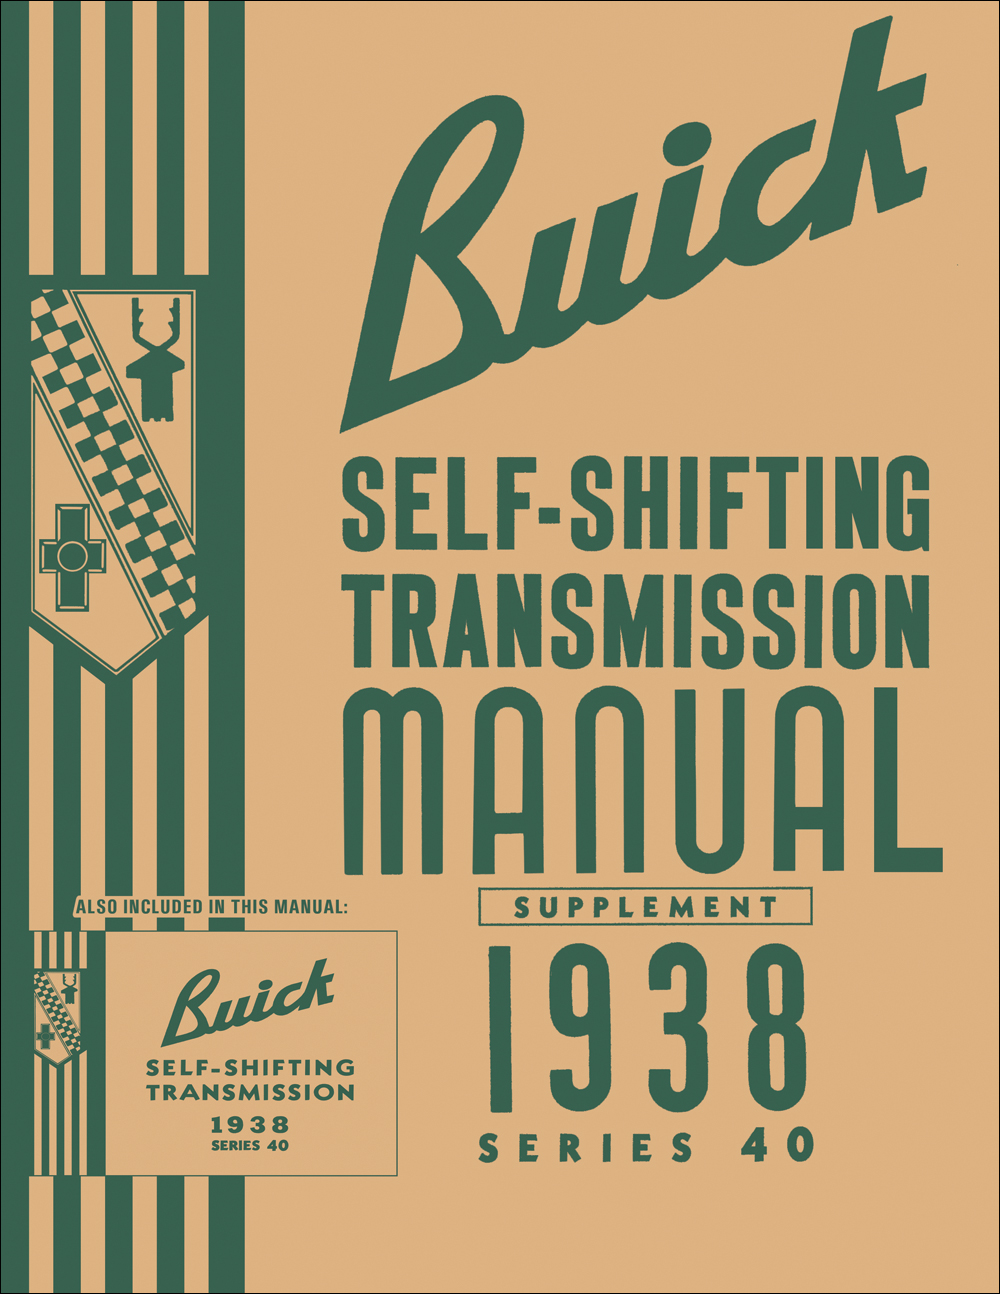 1938 Buick Special Self-Shifting Transmission Repair Shop Manual Reprint - 2 Books in 1